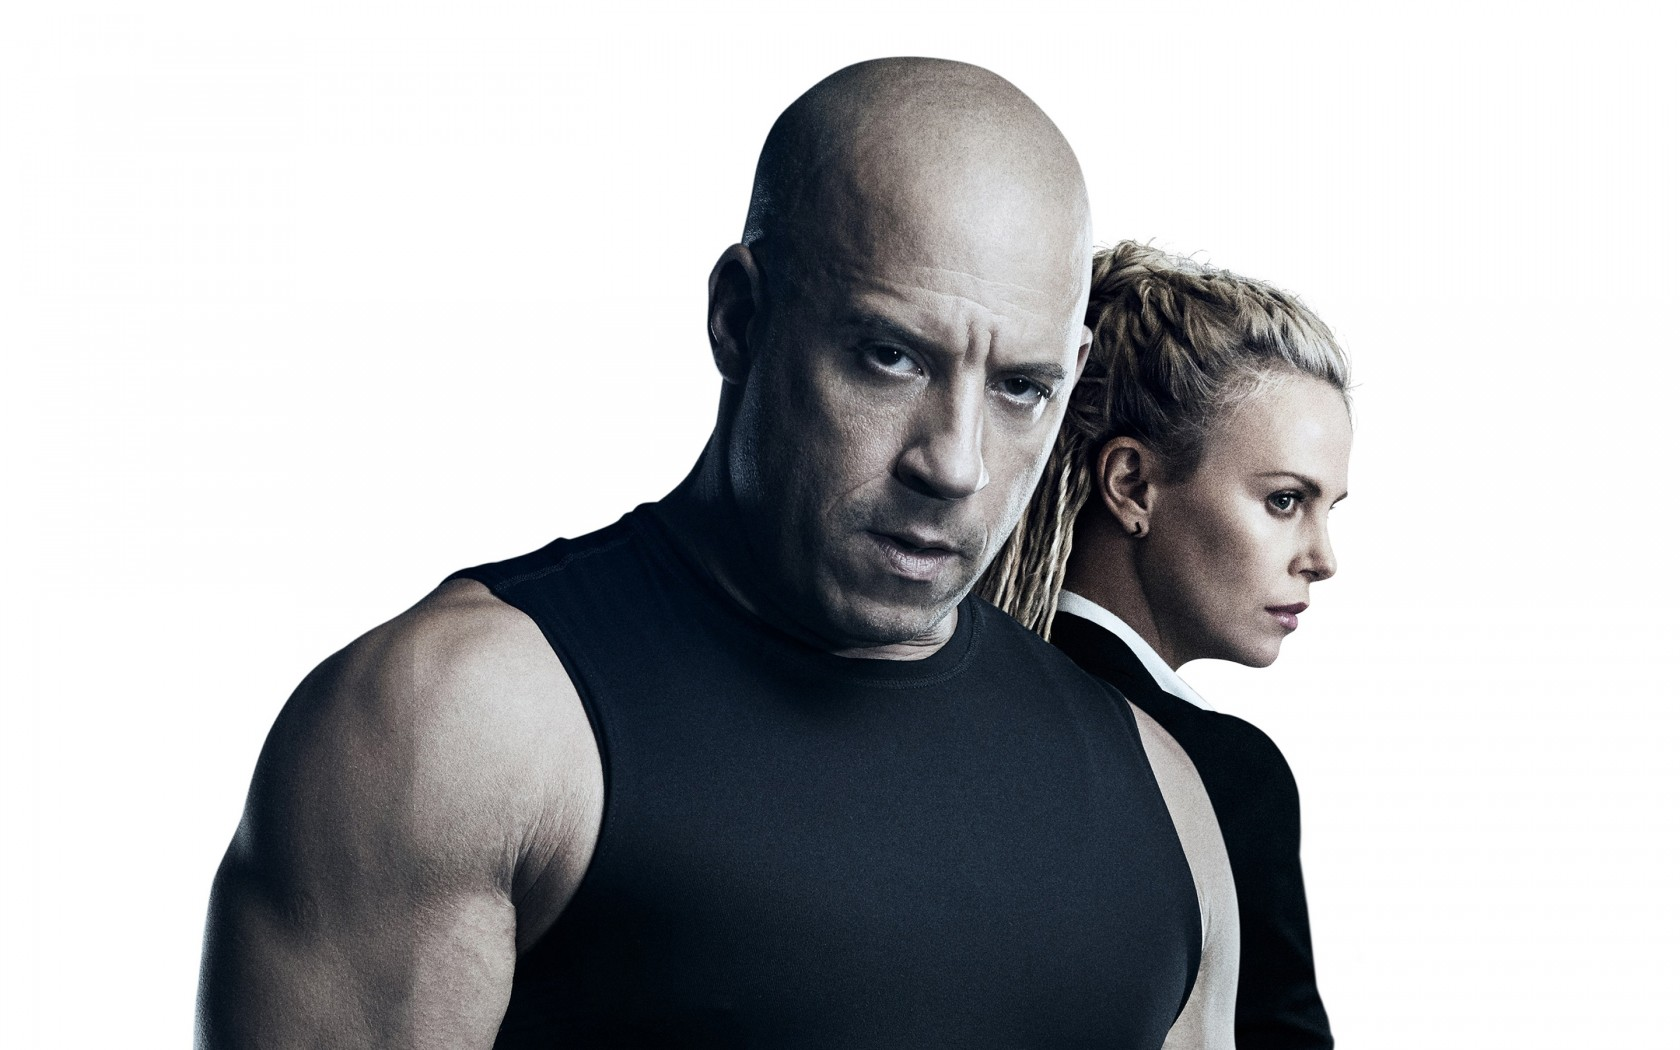 Dragon Ball Wallpaper 3d Hd Vin Diesel Charlize Theron The Fate Of The Furious